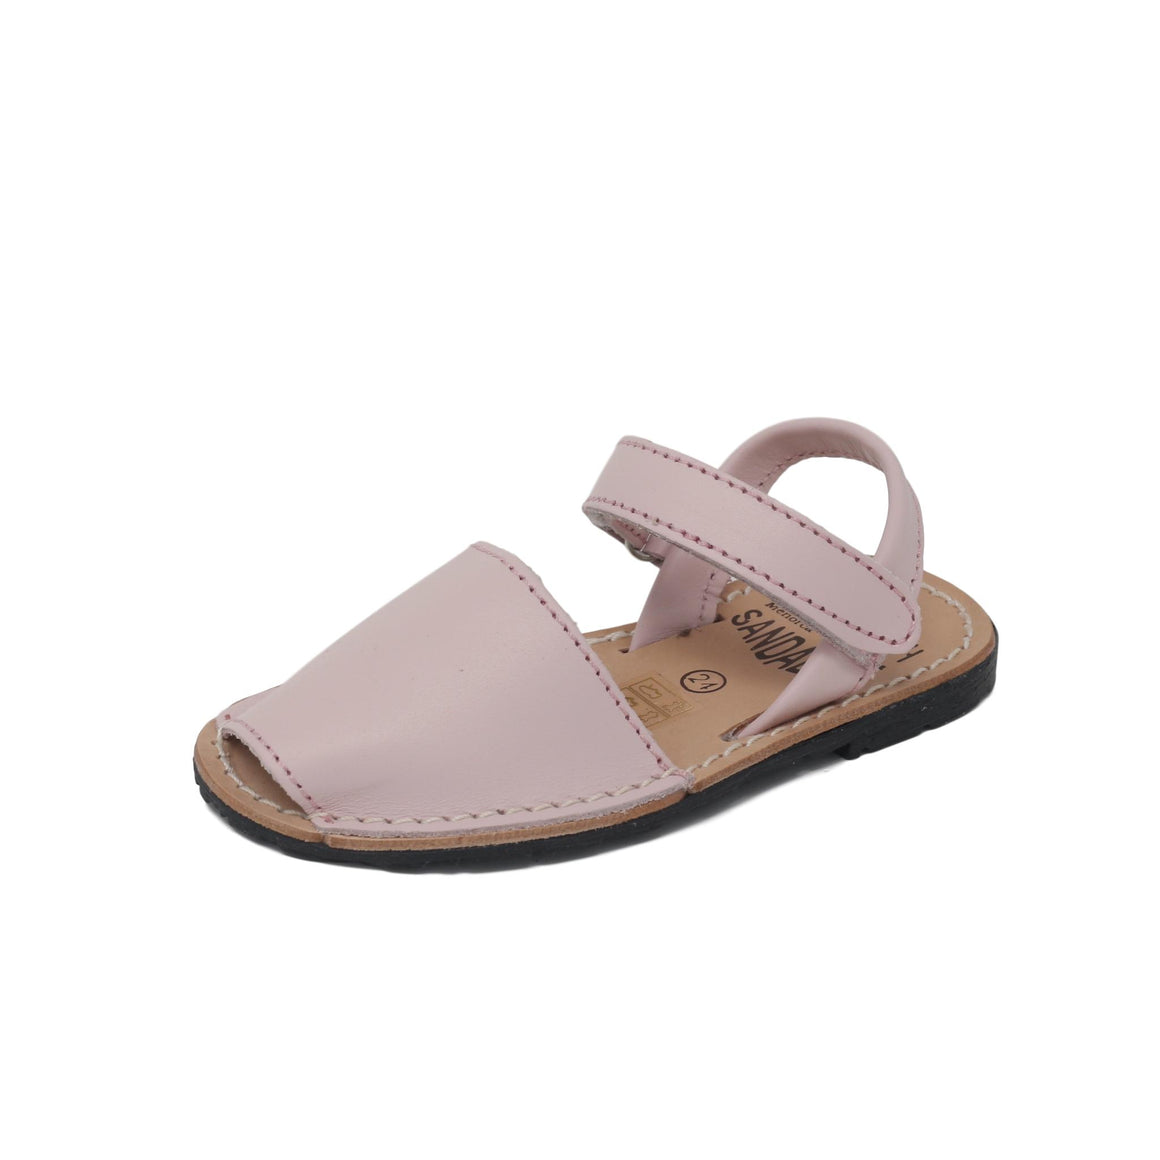 Baby blush pink with velcro strap